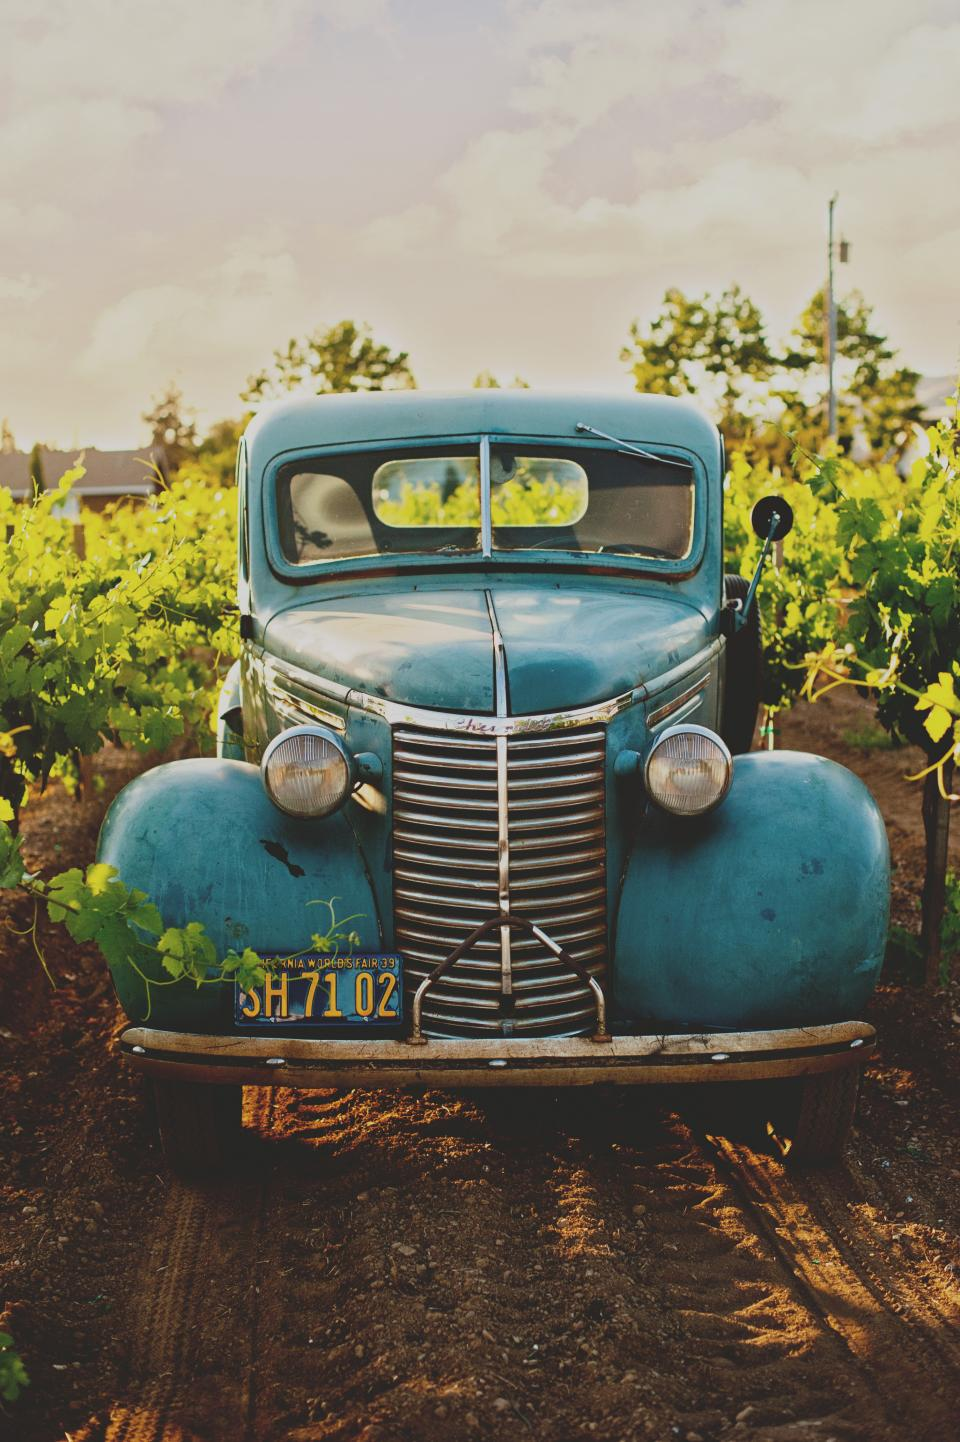 car vehicle transportation travel adventure old vintage farm green leaves dirty